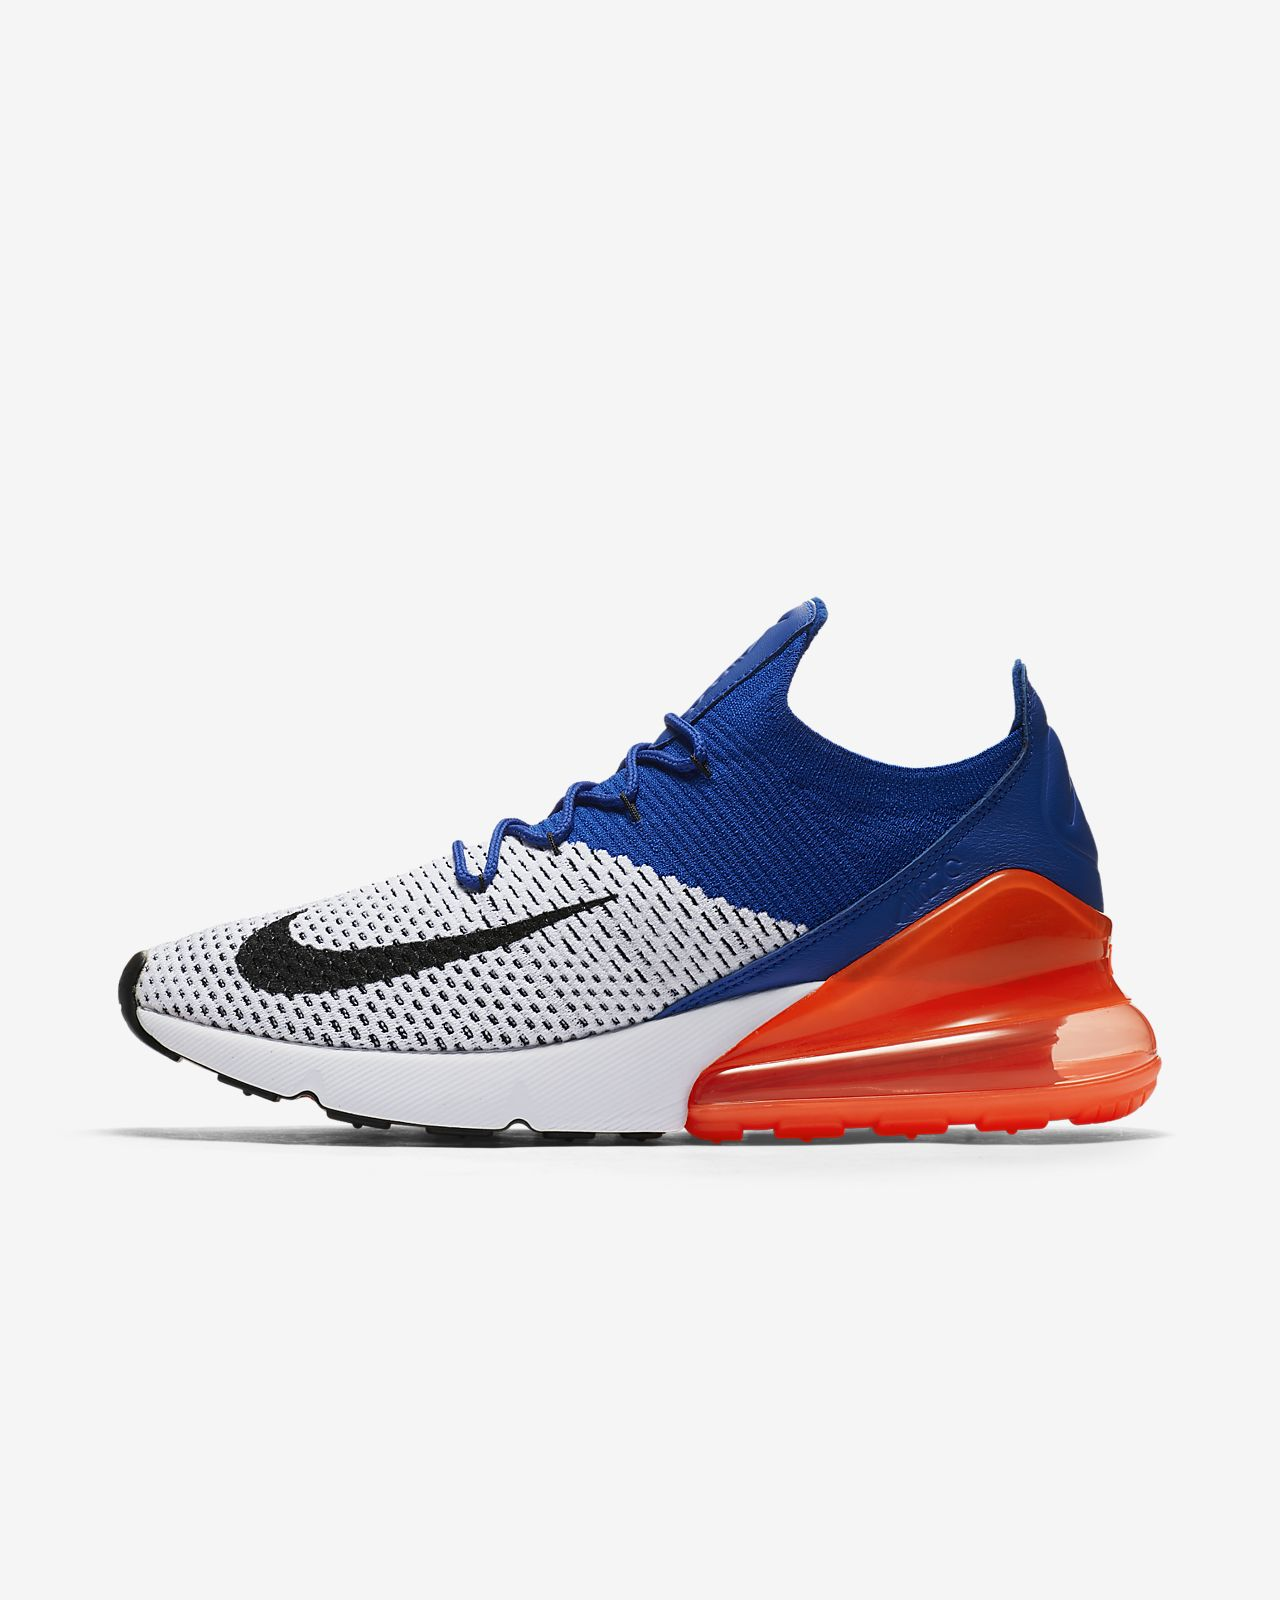 timeless design 8e5fd c88e0 Men s Shoe. Nike Air Max 270 Flyknit